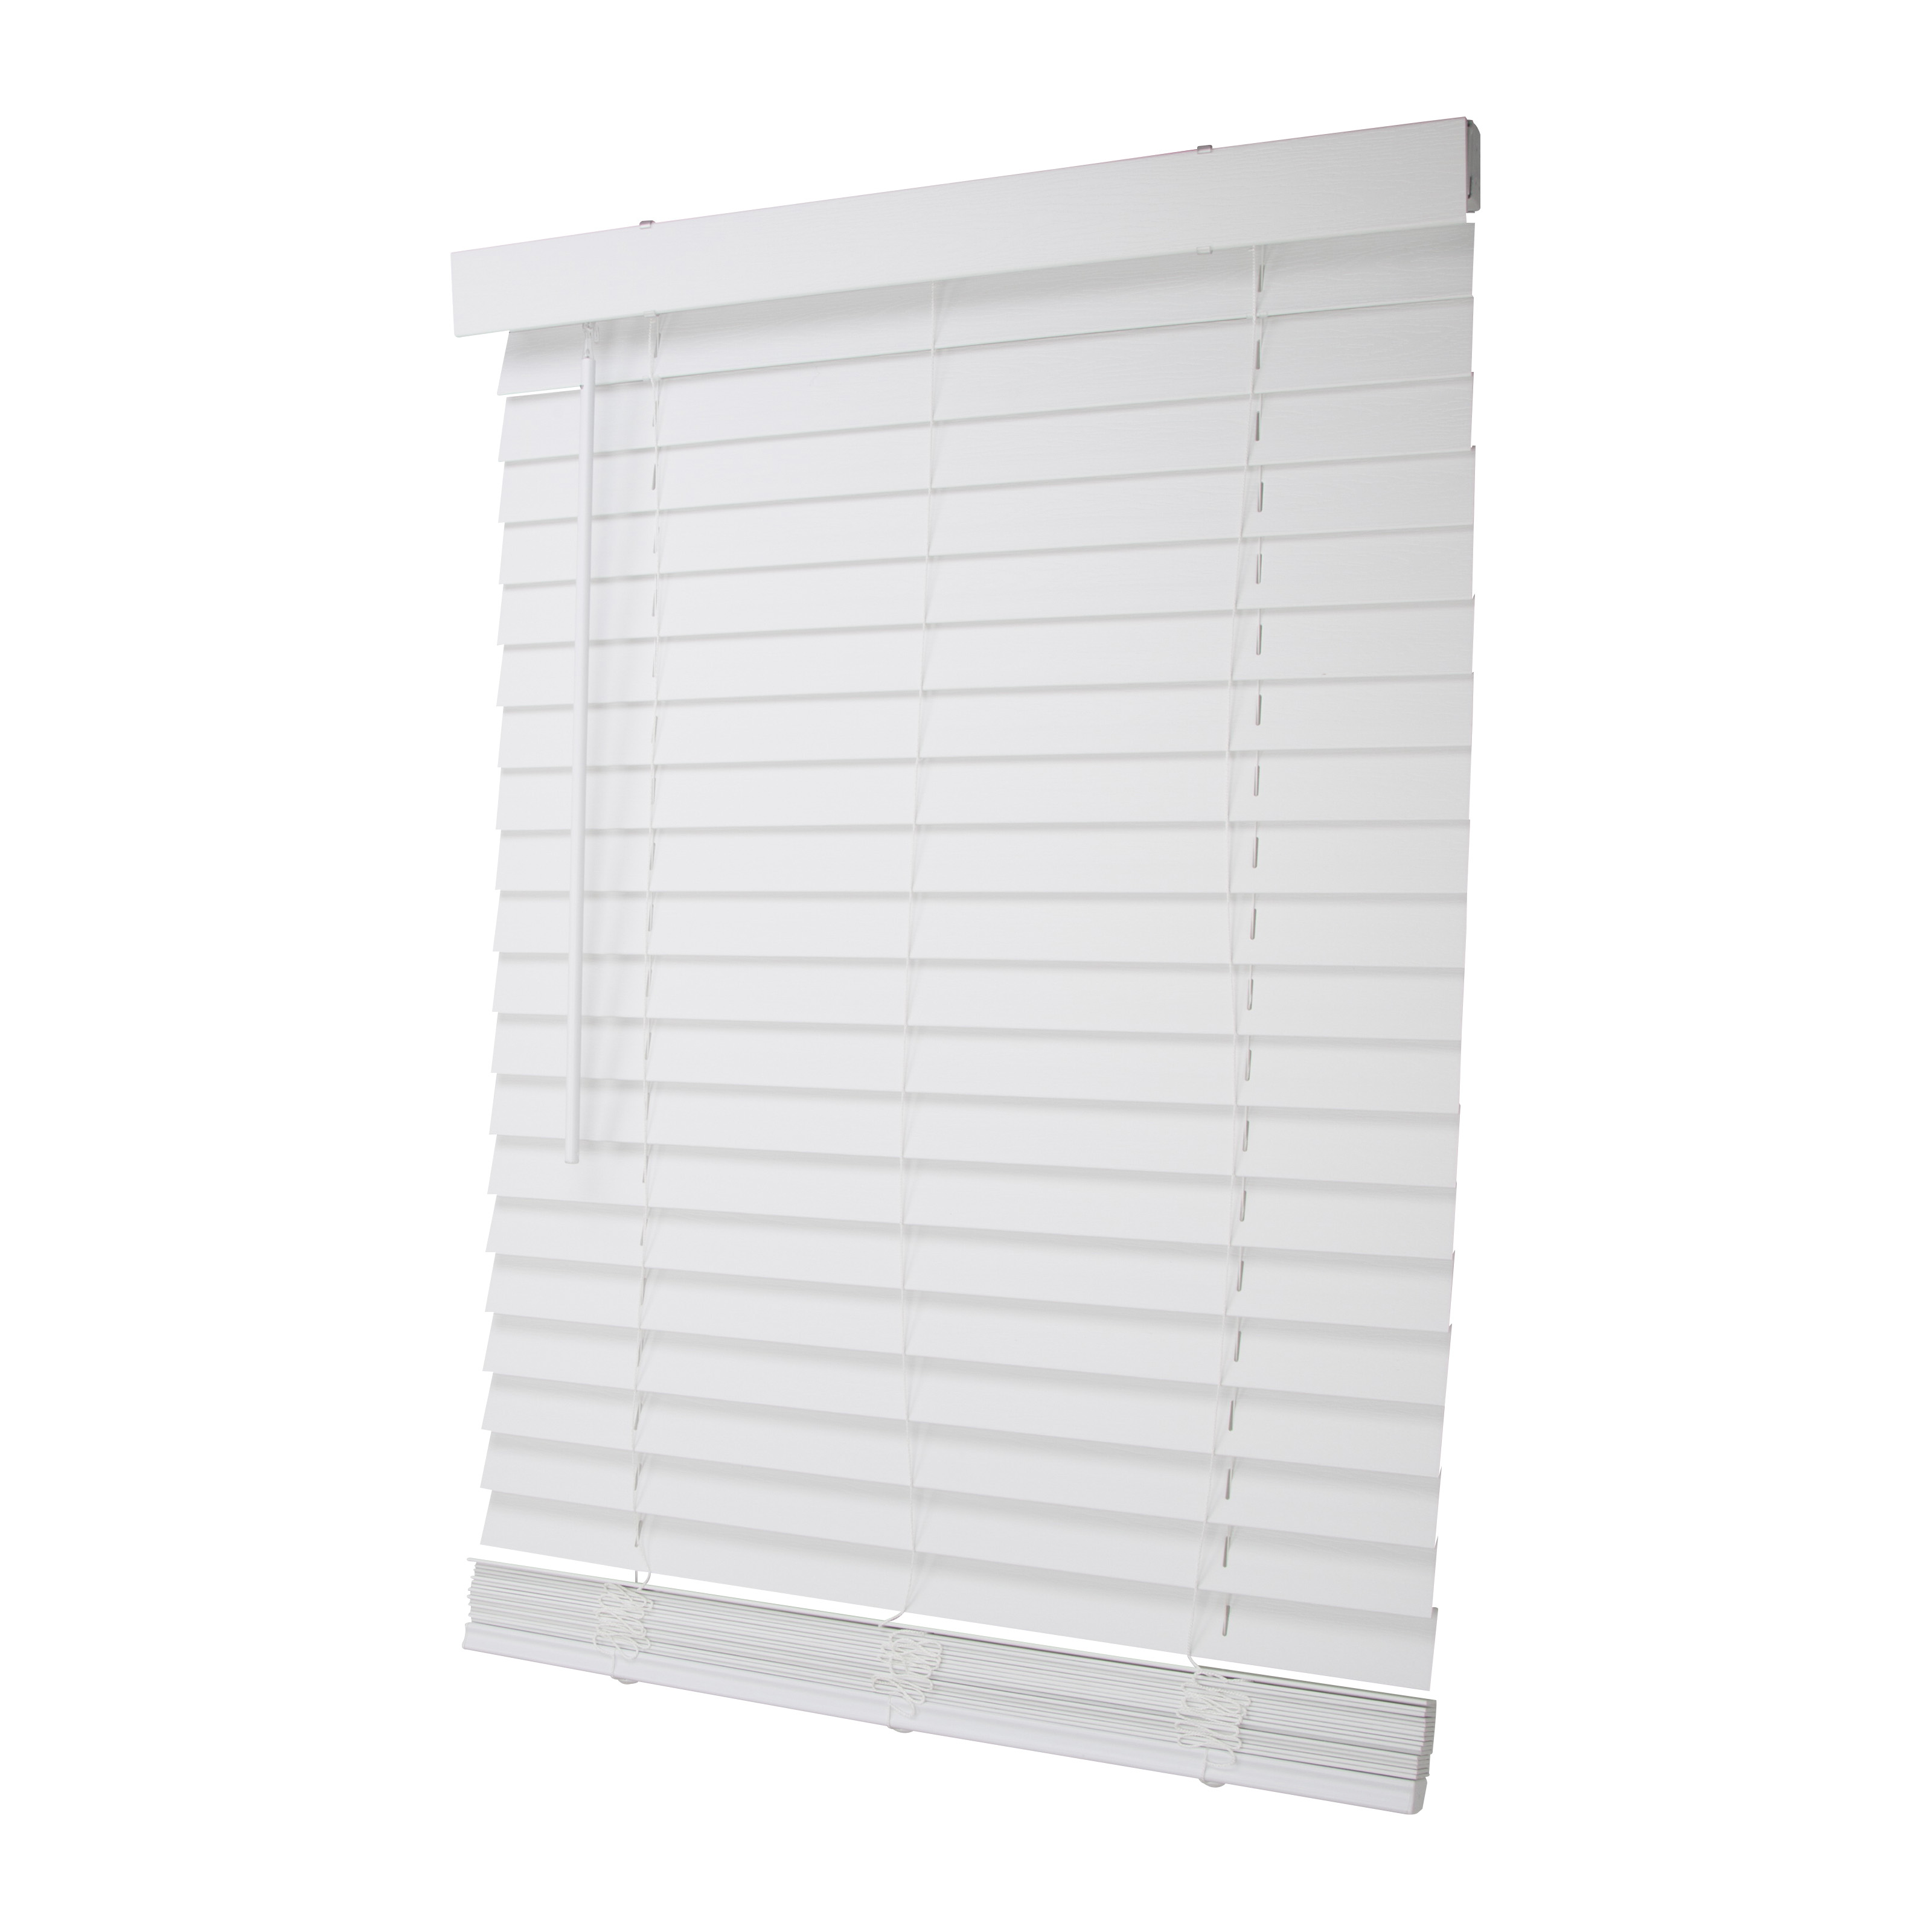 Picture of Simple Spaces FWMB-9 Cordless Mini Blind, 64 in L, 27 in W, Faux Wood, White